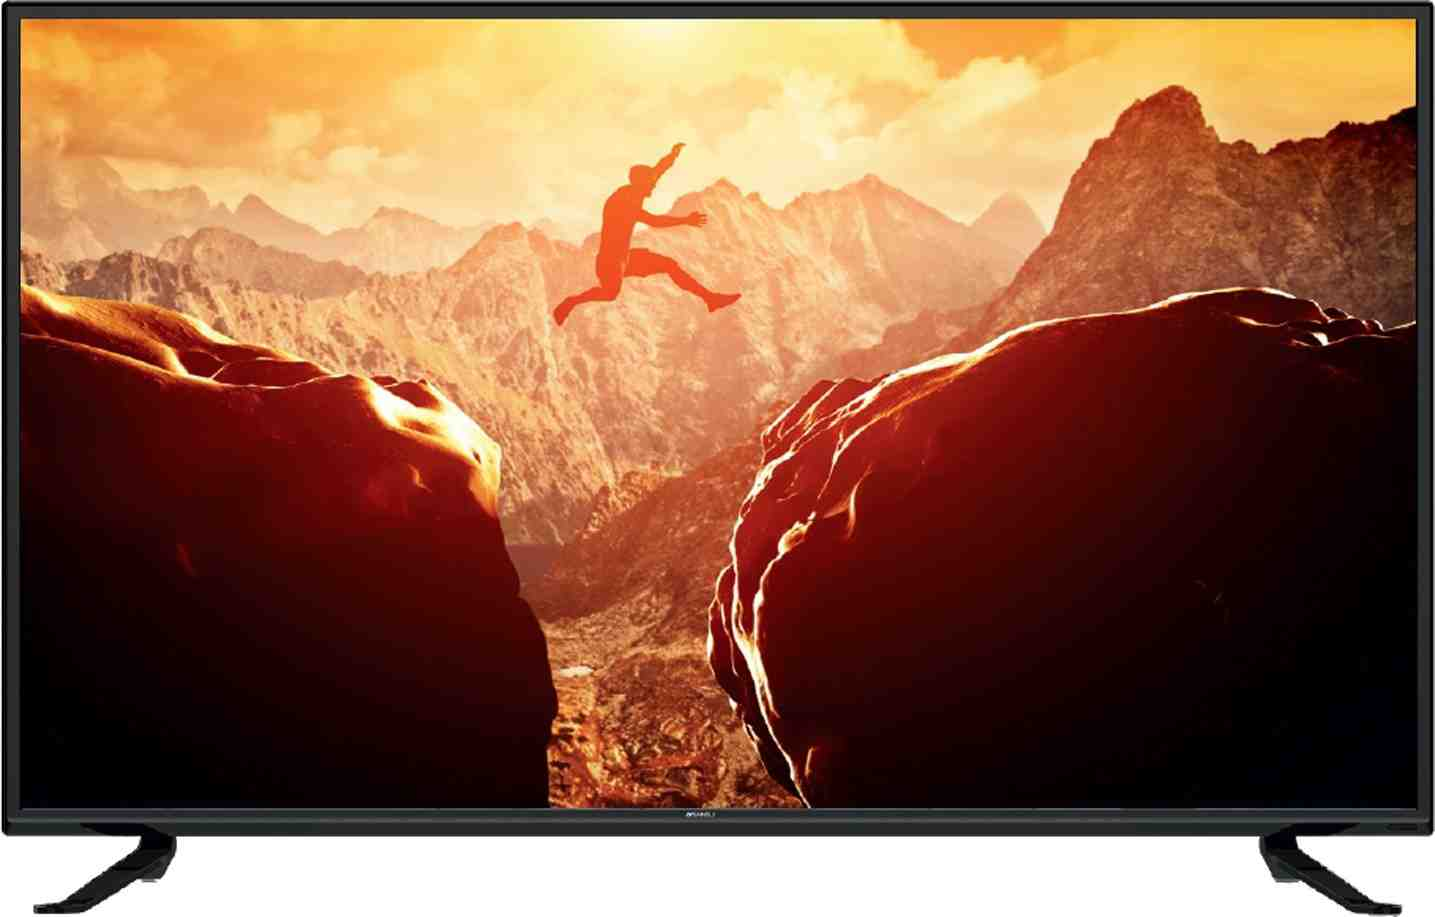 Best price on Sansui SKY43FH11FA 43 Inch Full HD LED TV  in India